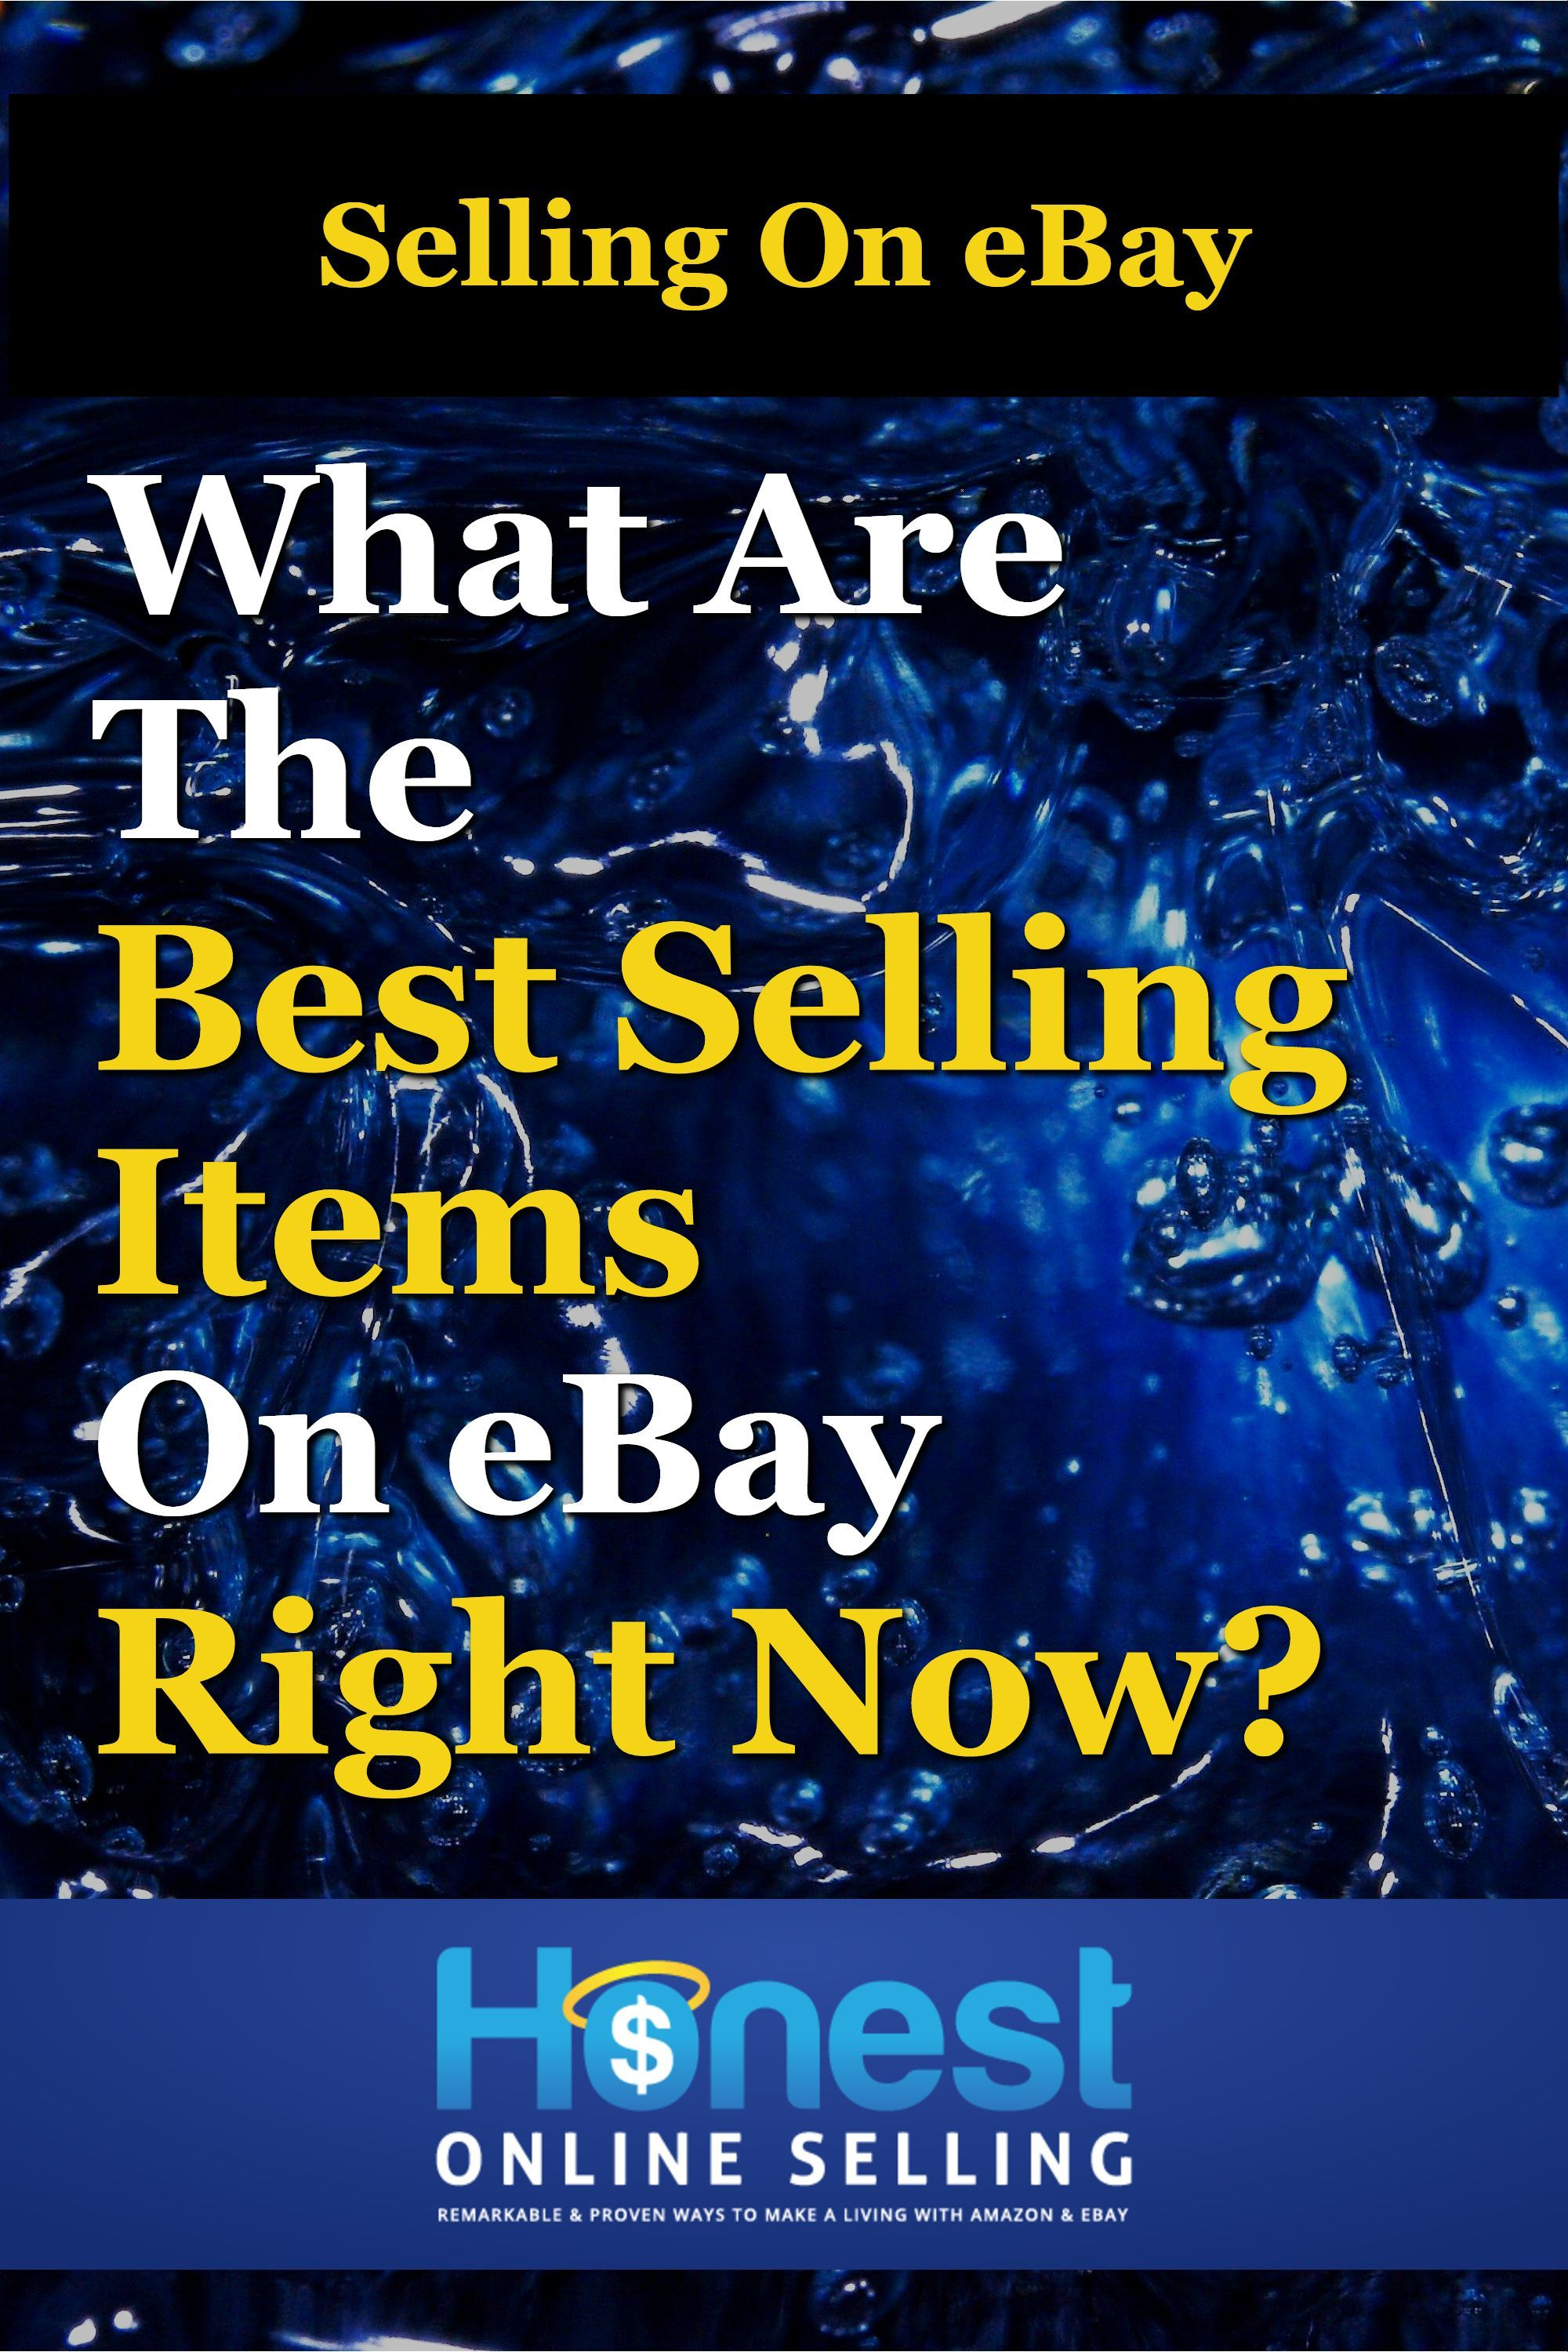 7 Reasons Why Selling Toys On Ebay Is Super Profitable Selling On Ebay Ideas Of Buying A Condo Condo In 2020 Ebay Selling Tips Ebay Business Ideas Selling On Ebay